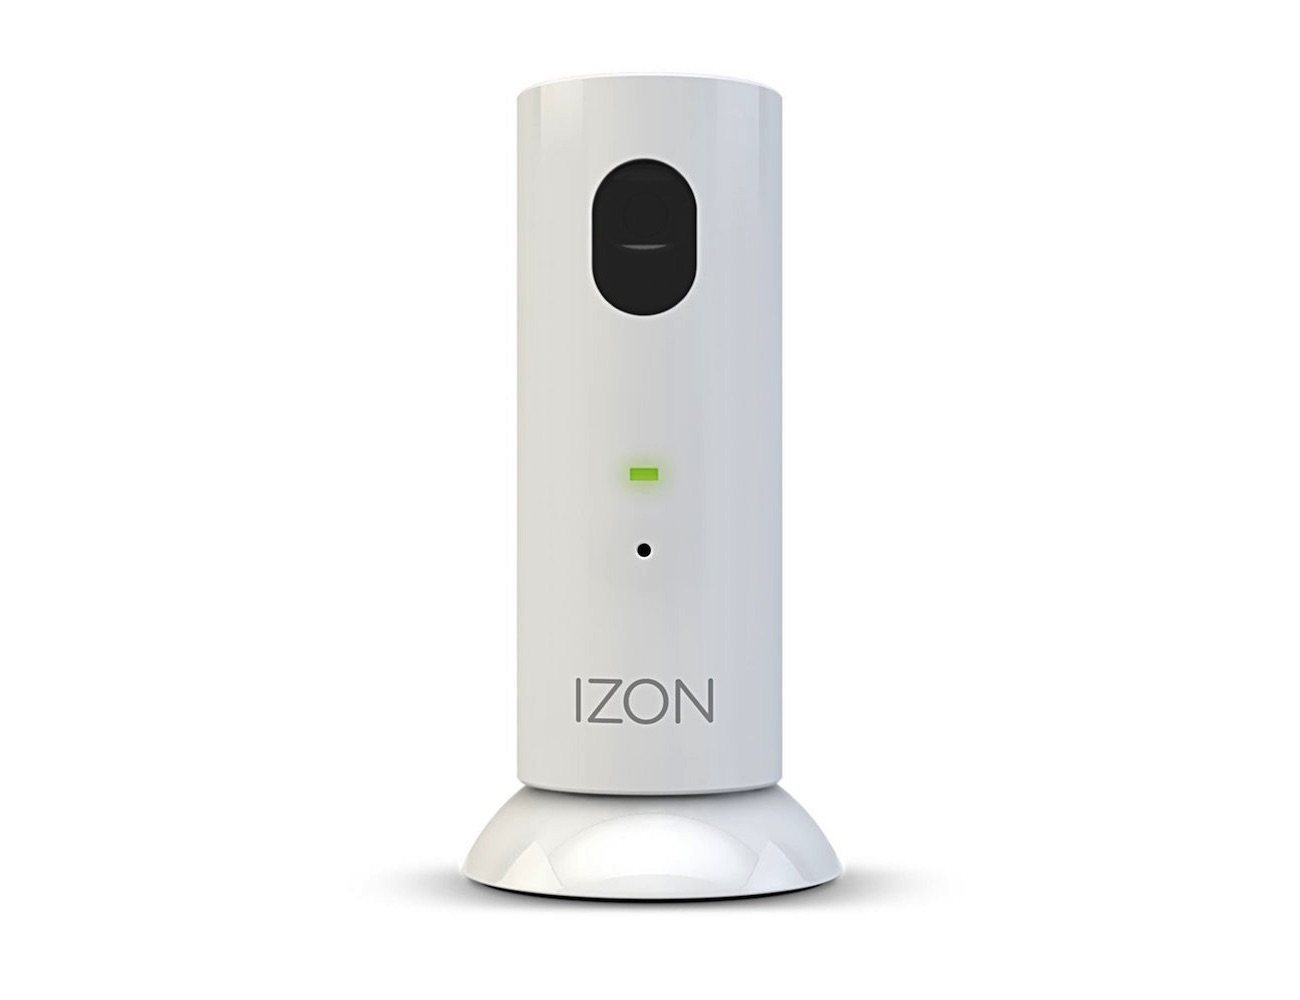 izon-security-camera-04.jpg